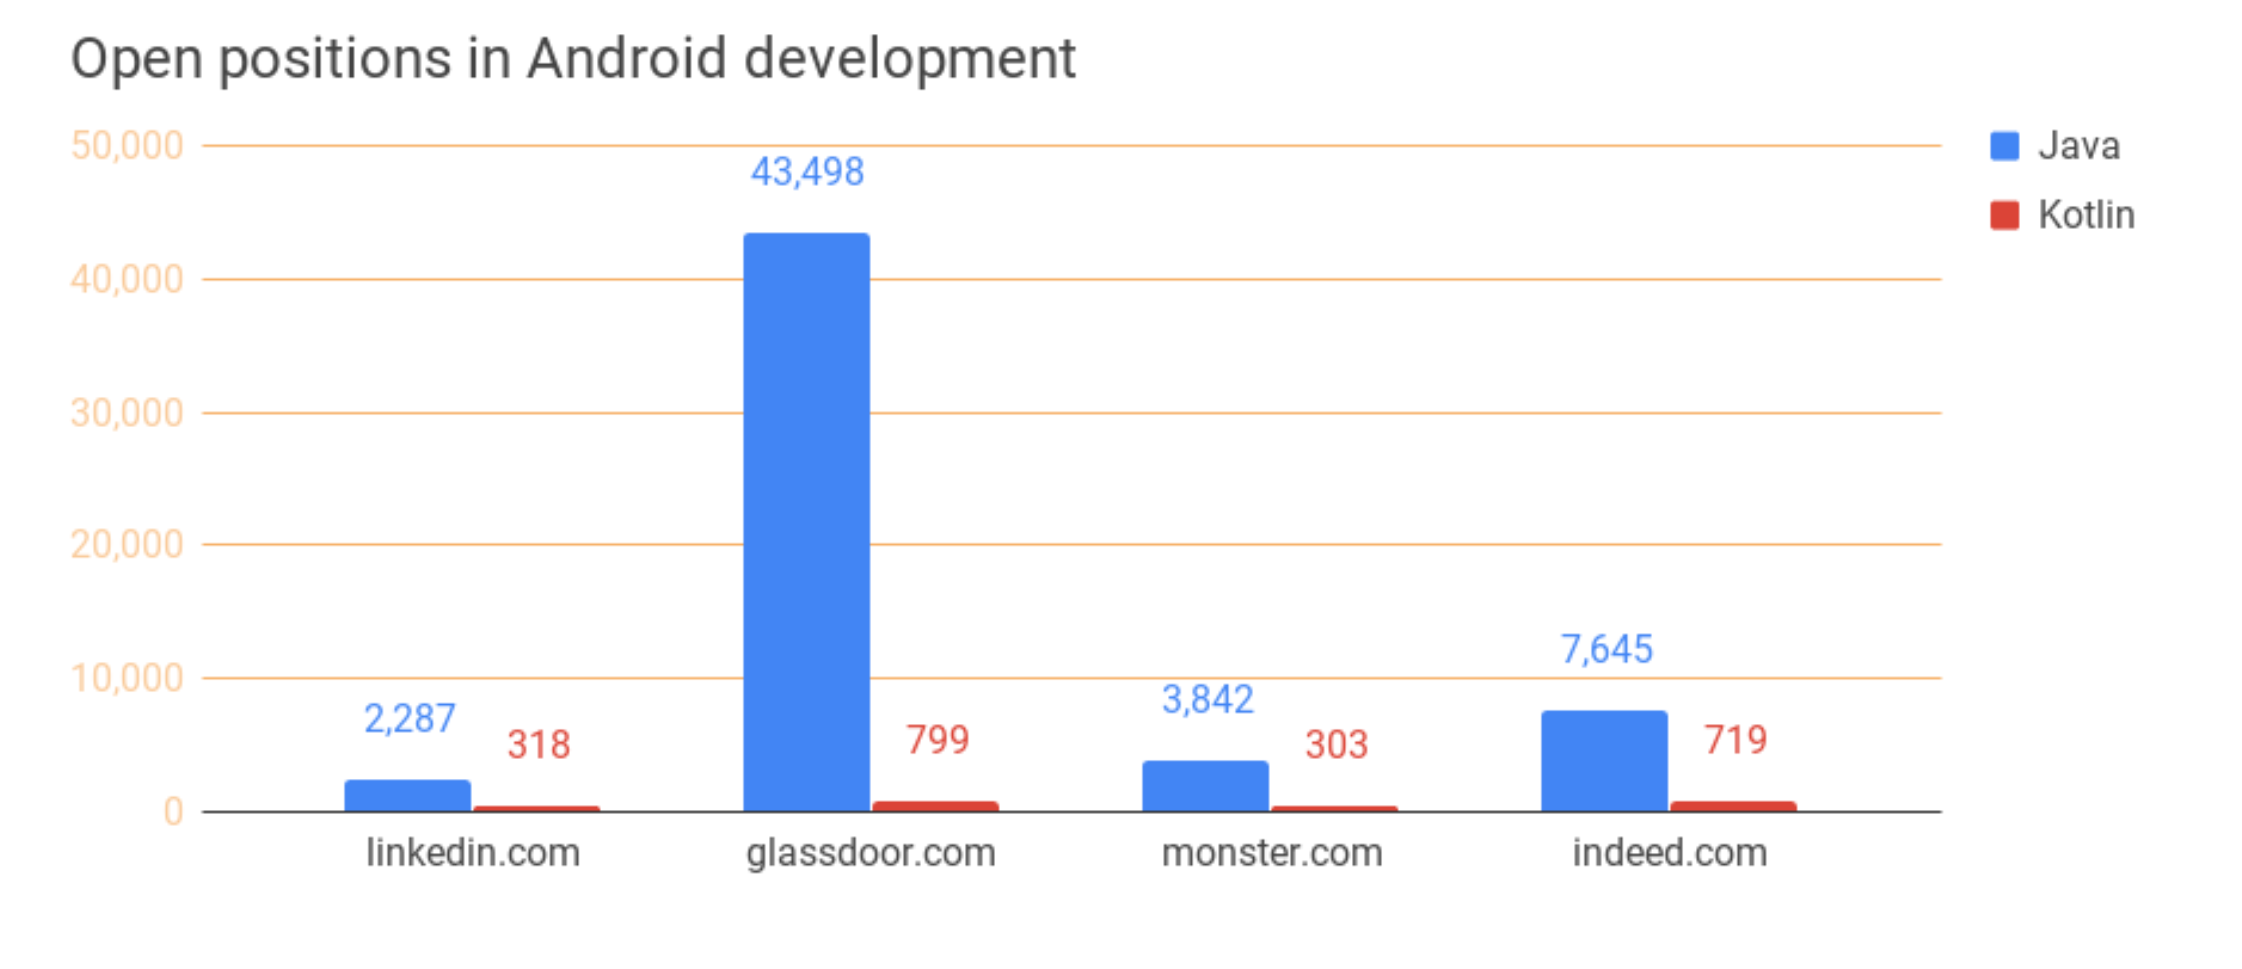 open positions in Android development